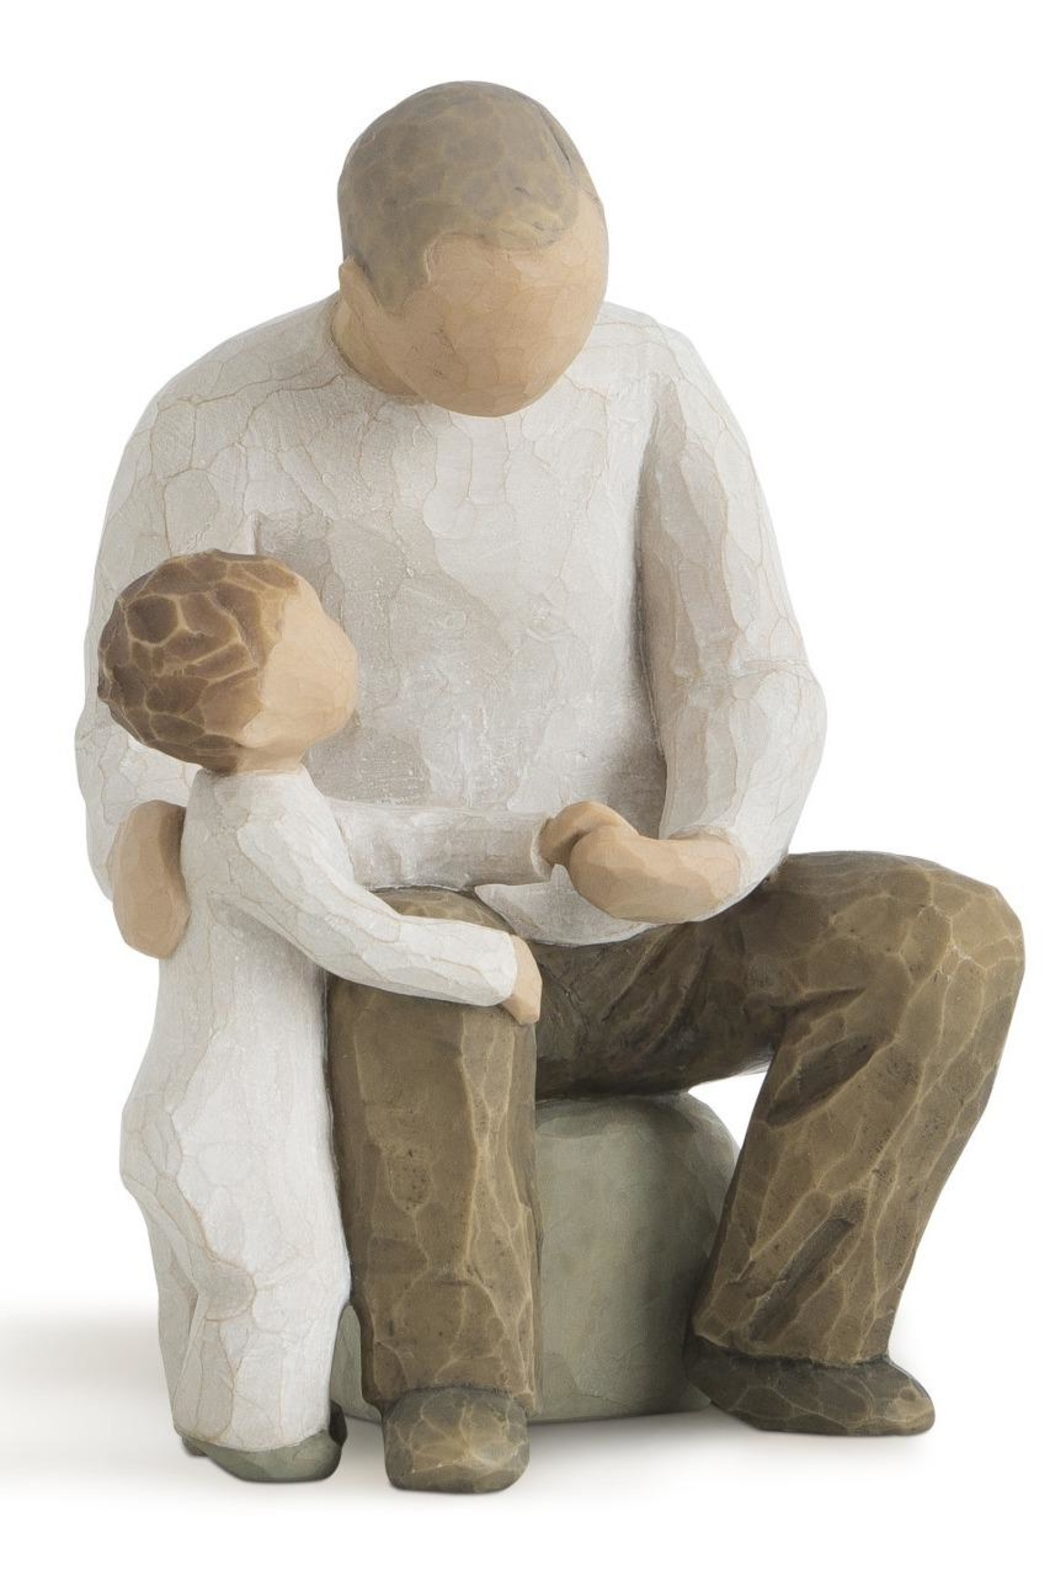 Willow Tree(r) by Susan Lordi, from DEMDACO Grandfather Figurine - Main Image